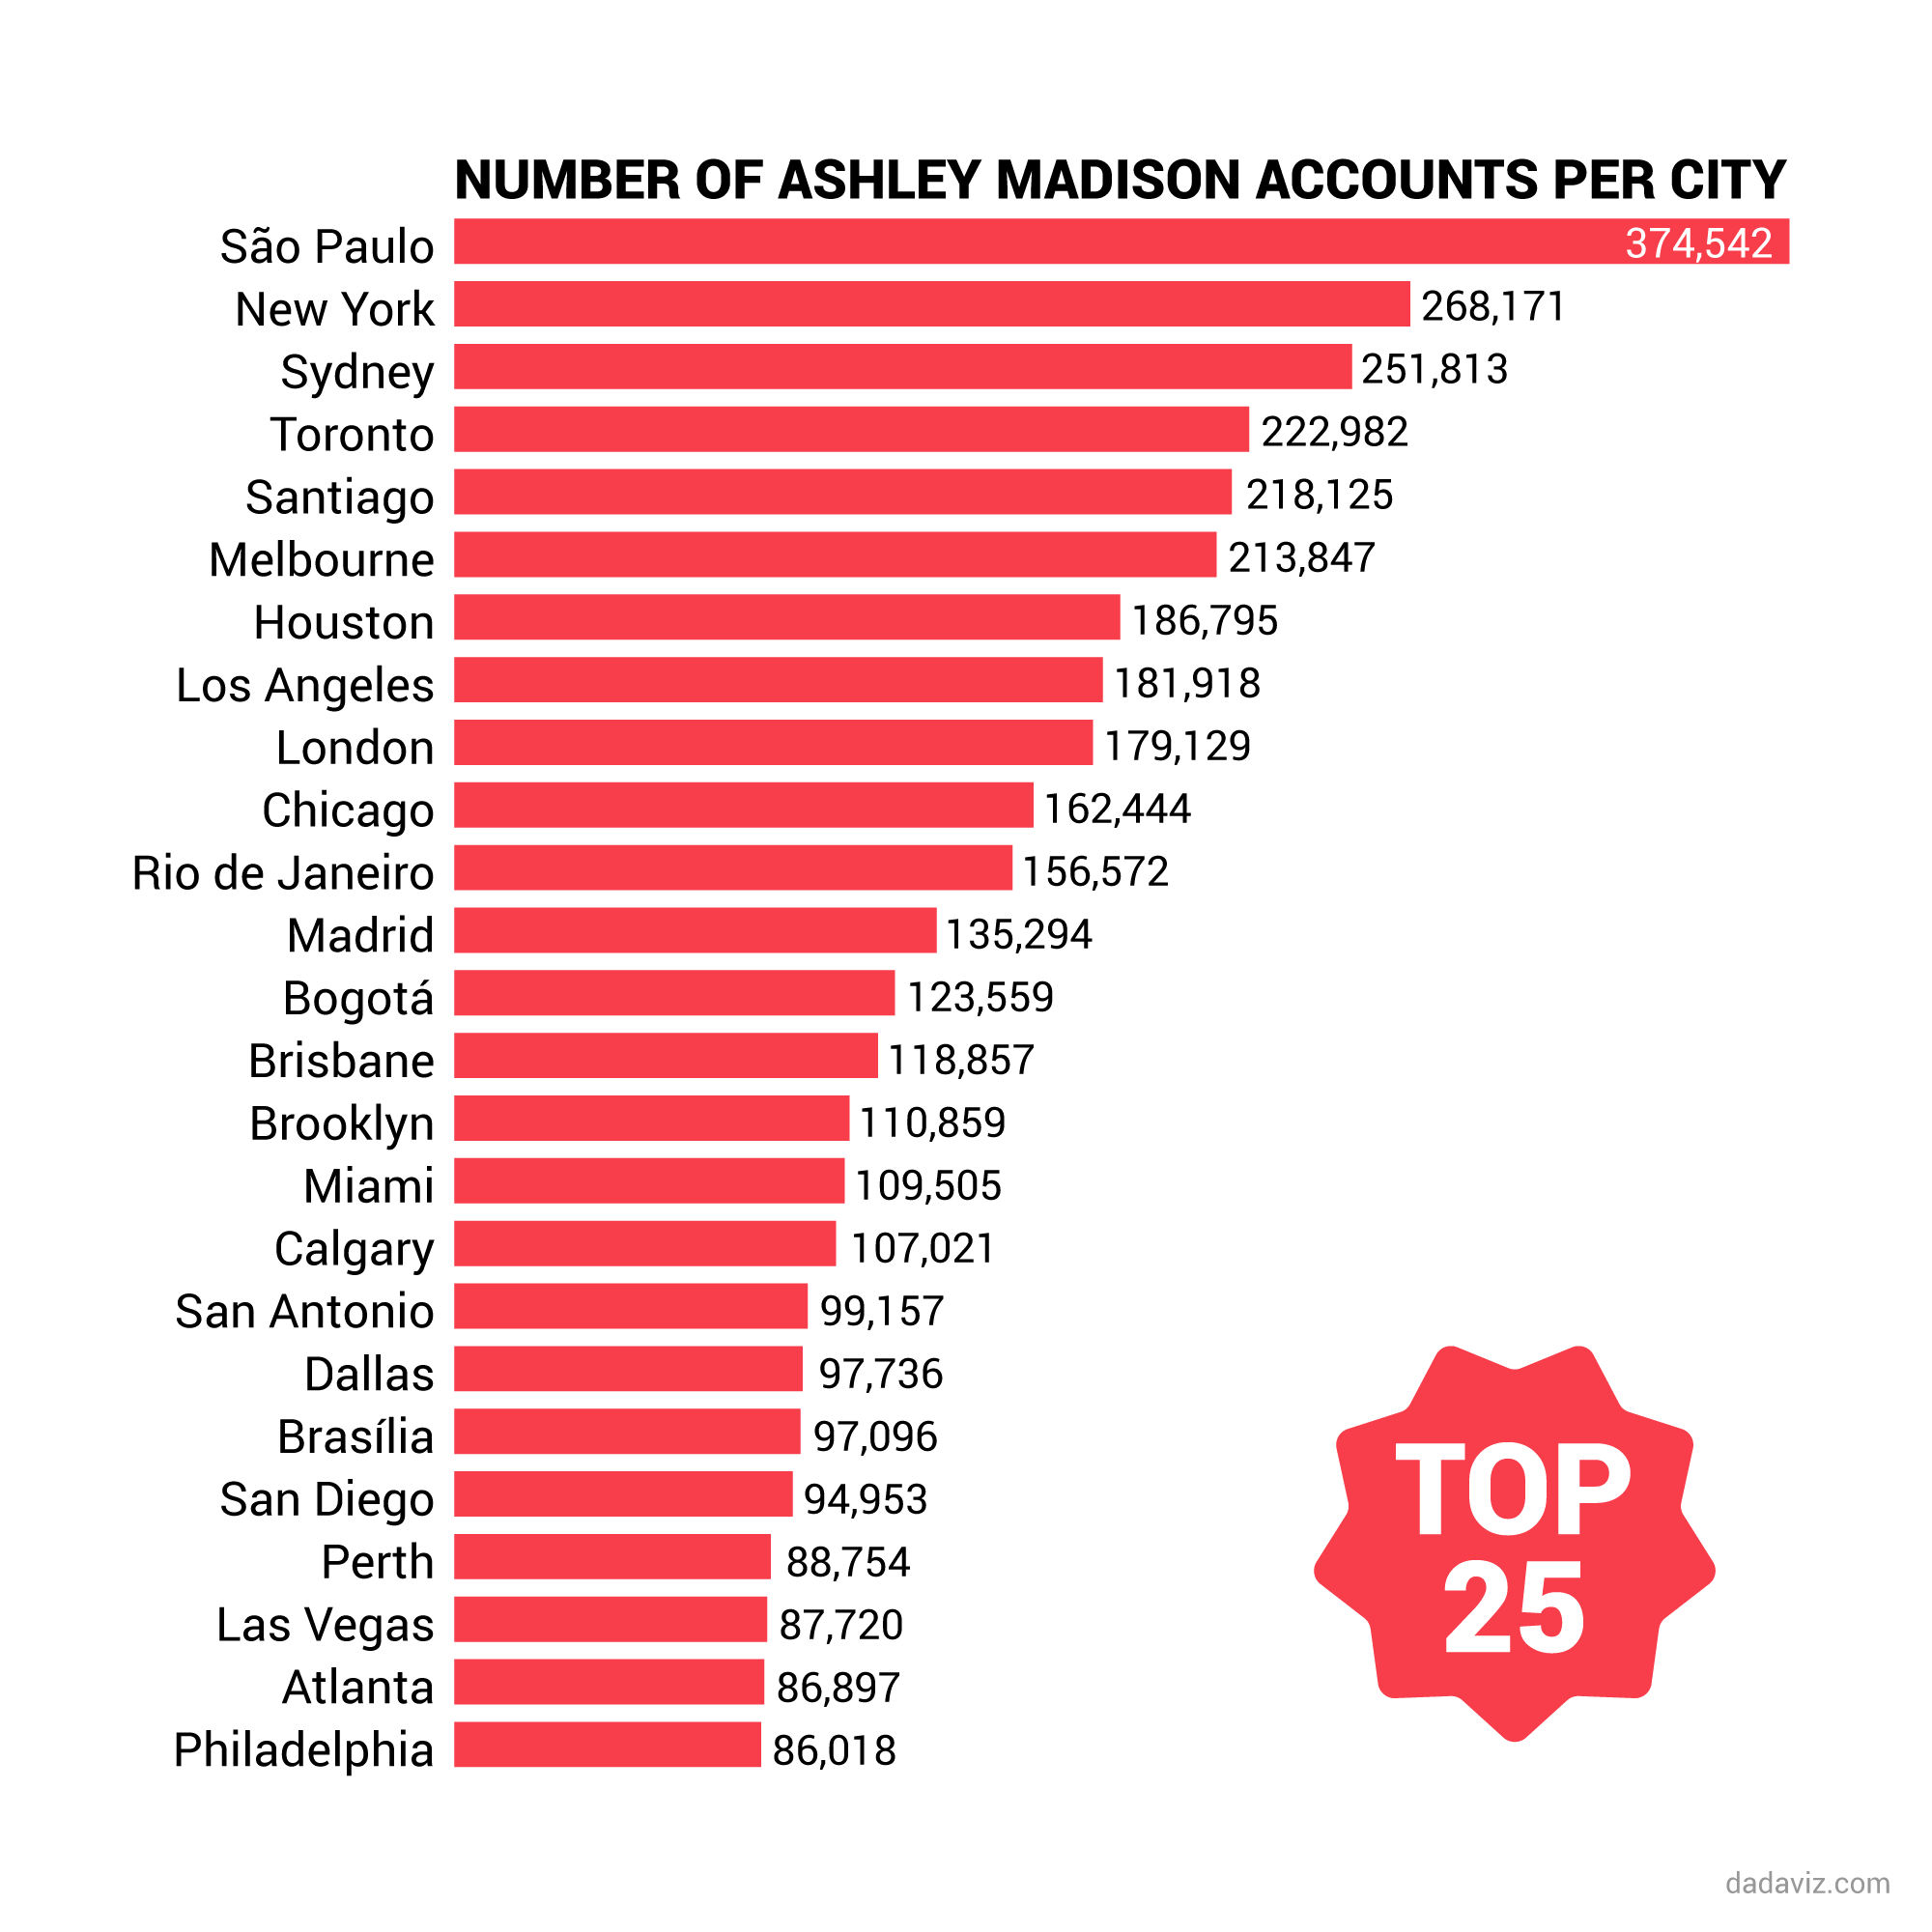 Top 25 Cheating Cities according to Ashley Madison